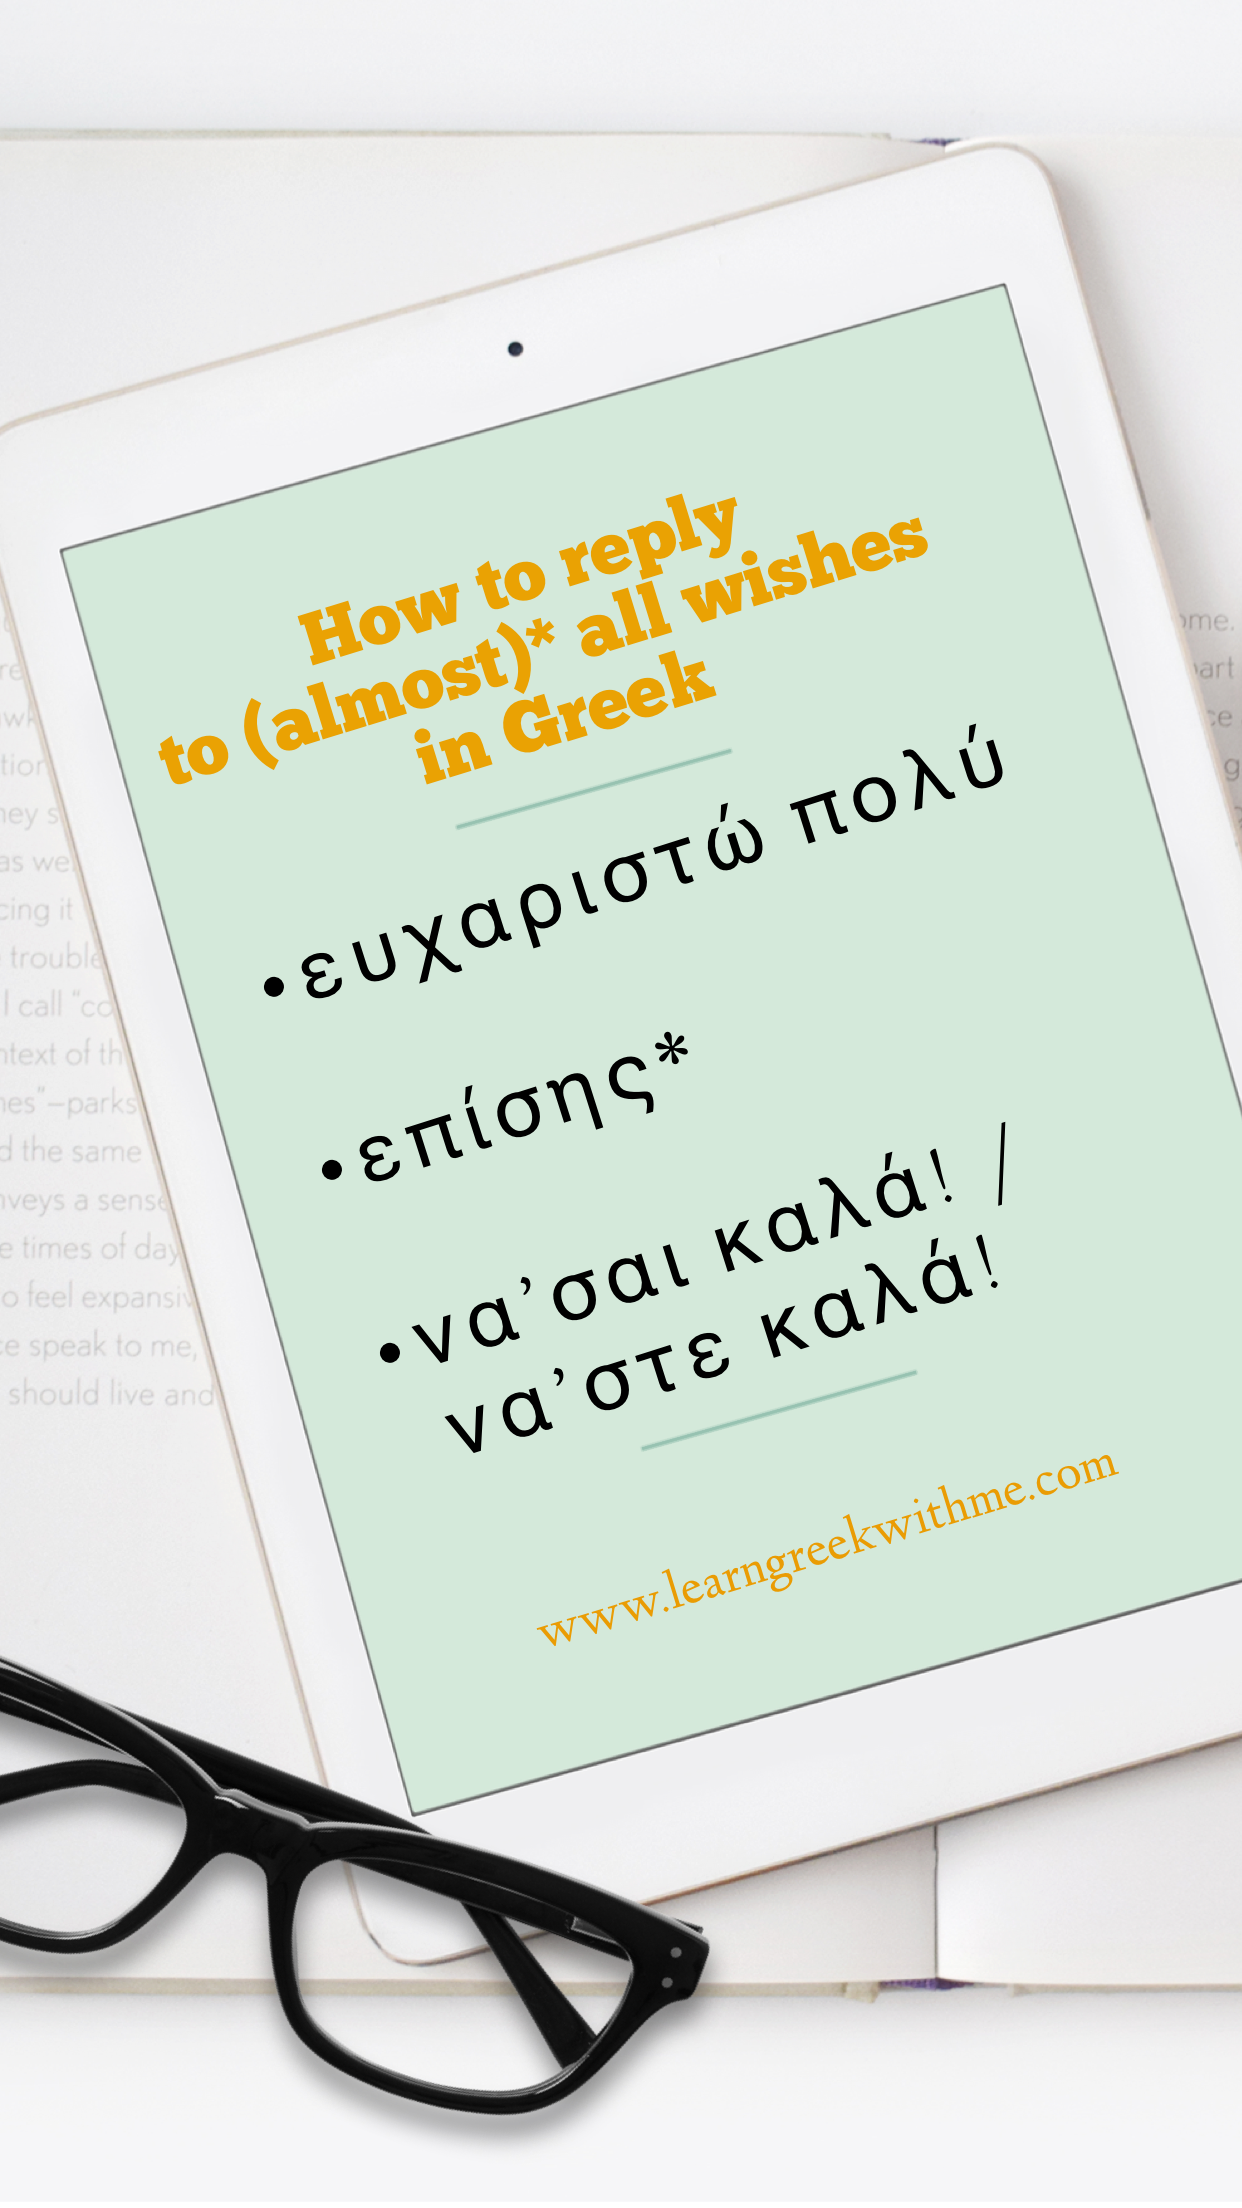 How to answer to (almost) all wishes in Greek